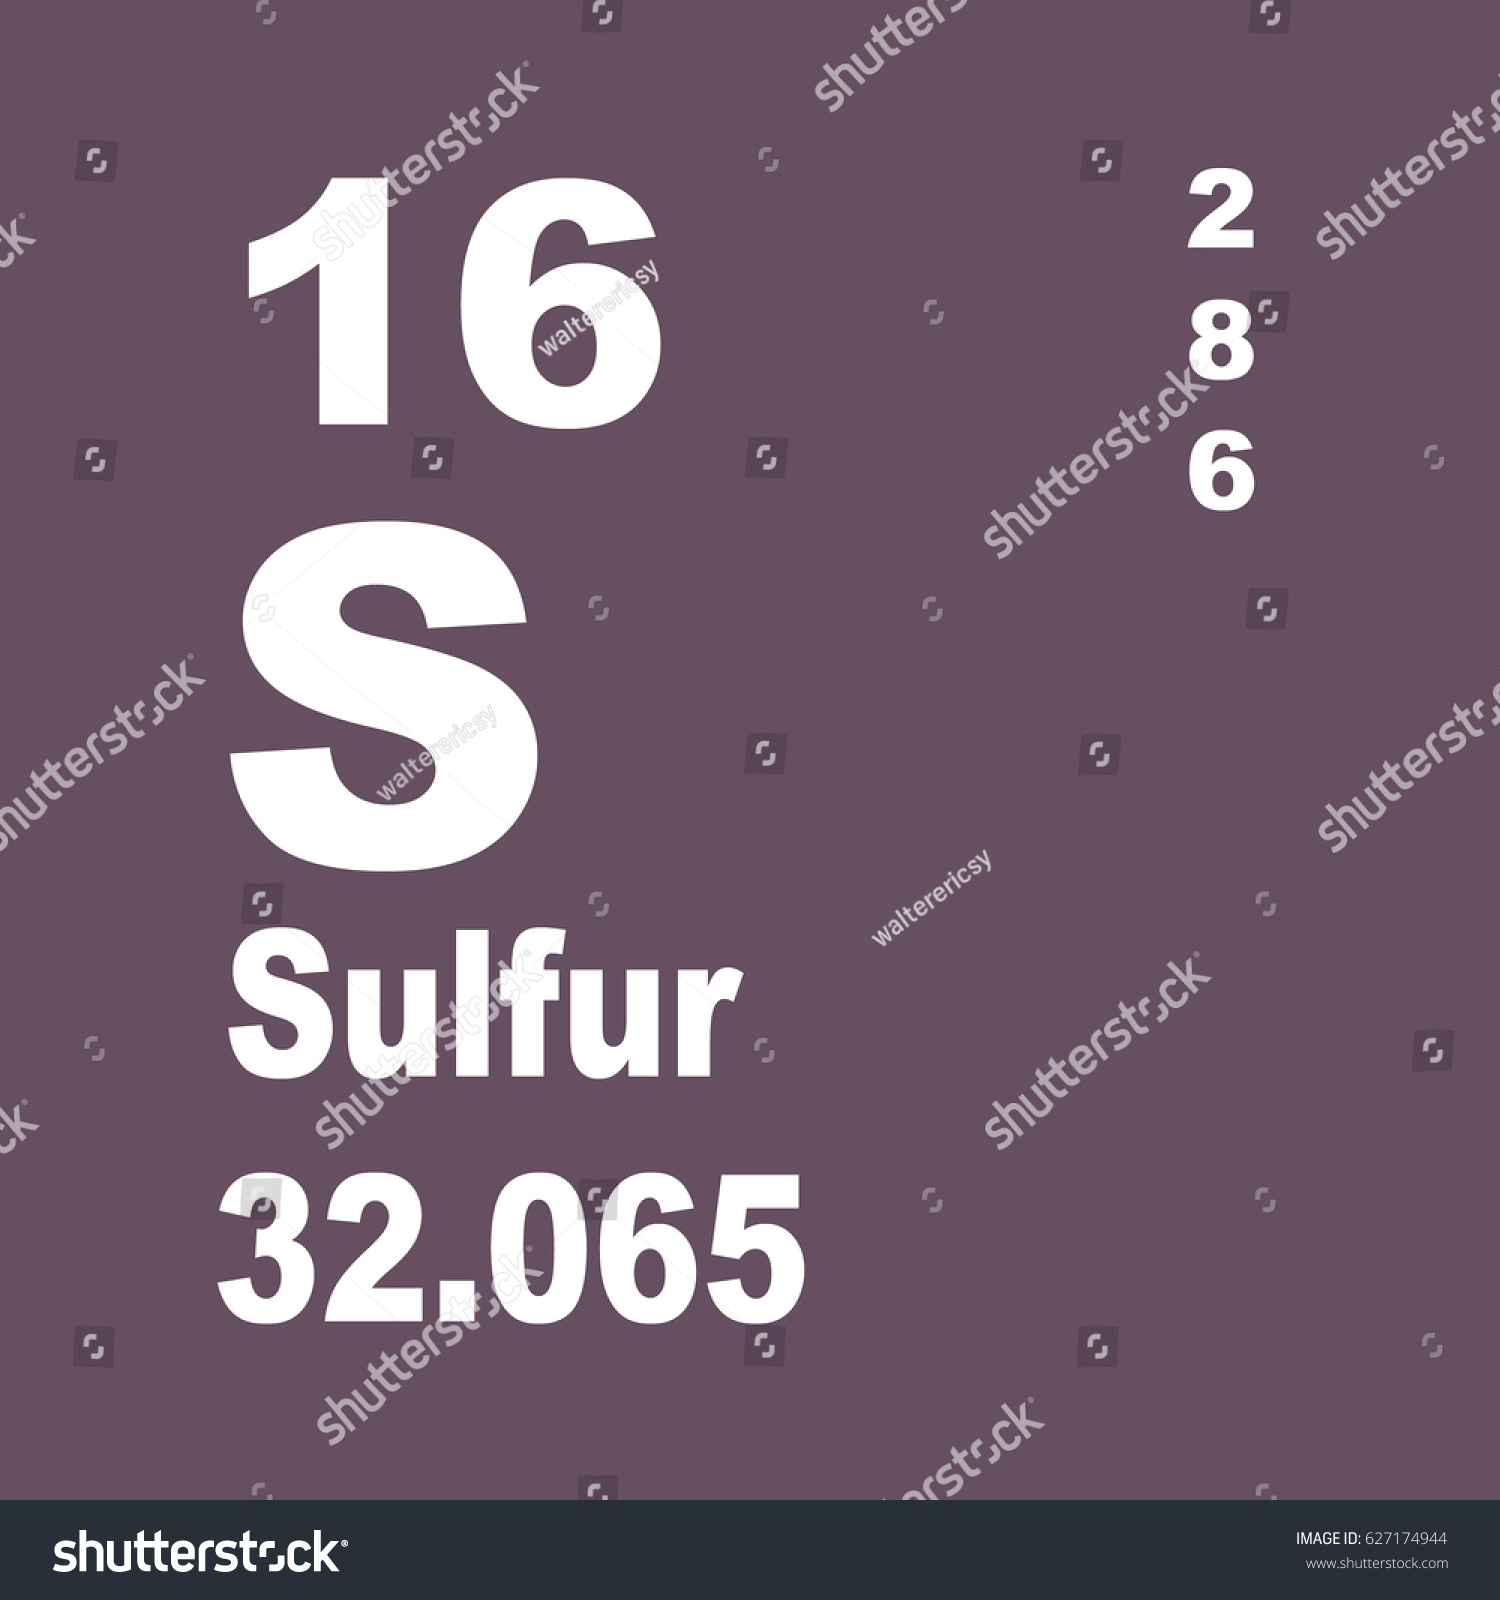 Sulfur periodic table elements stock illustration 627174944 sulfur periodic table of elements gamestrikefo Choice Image